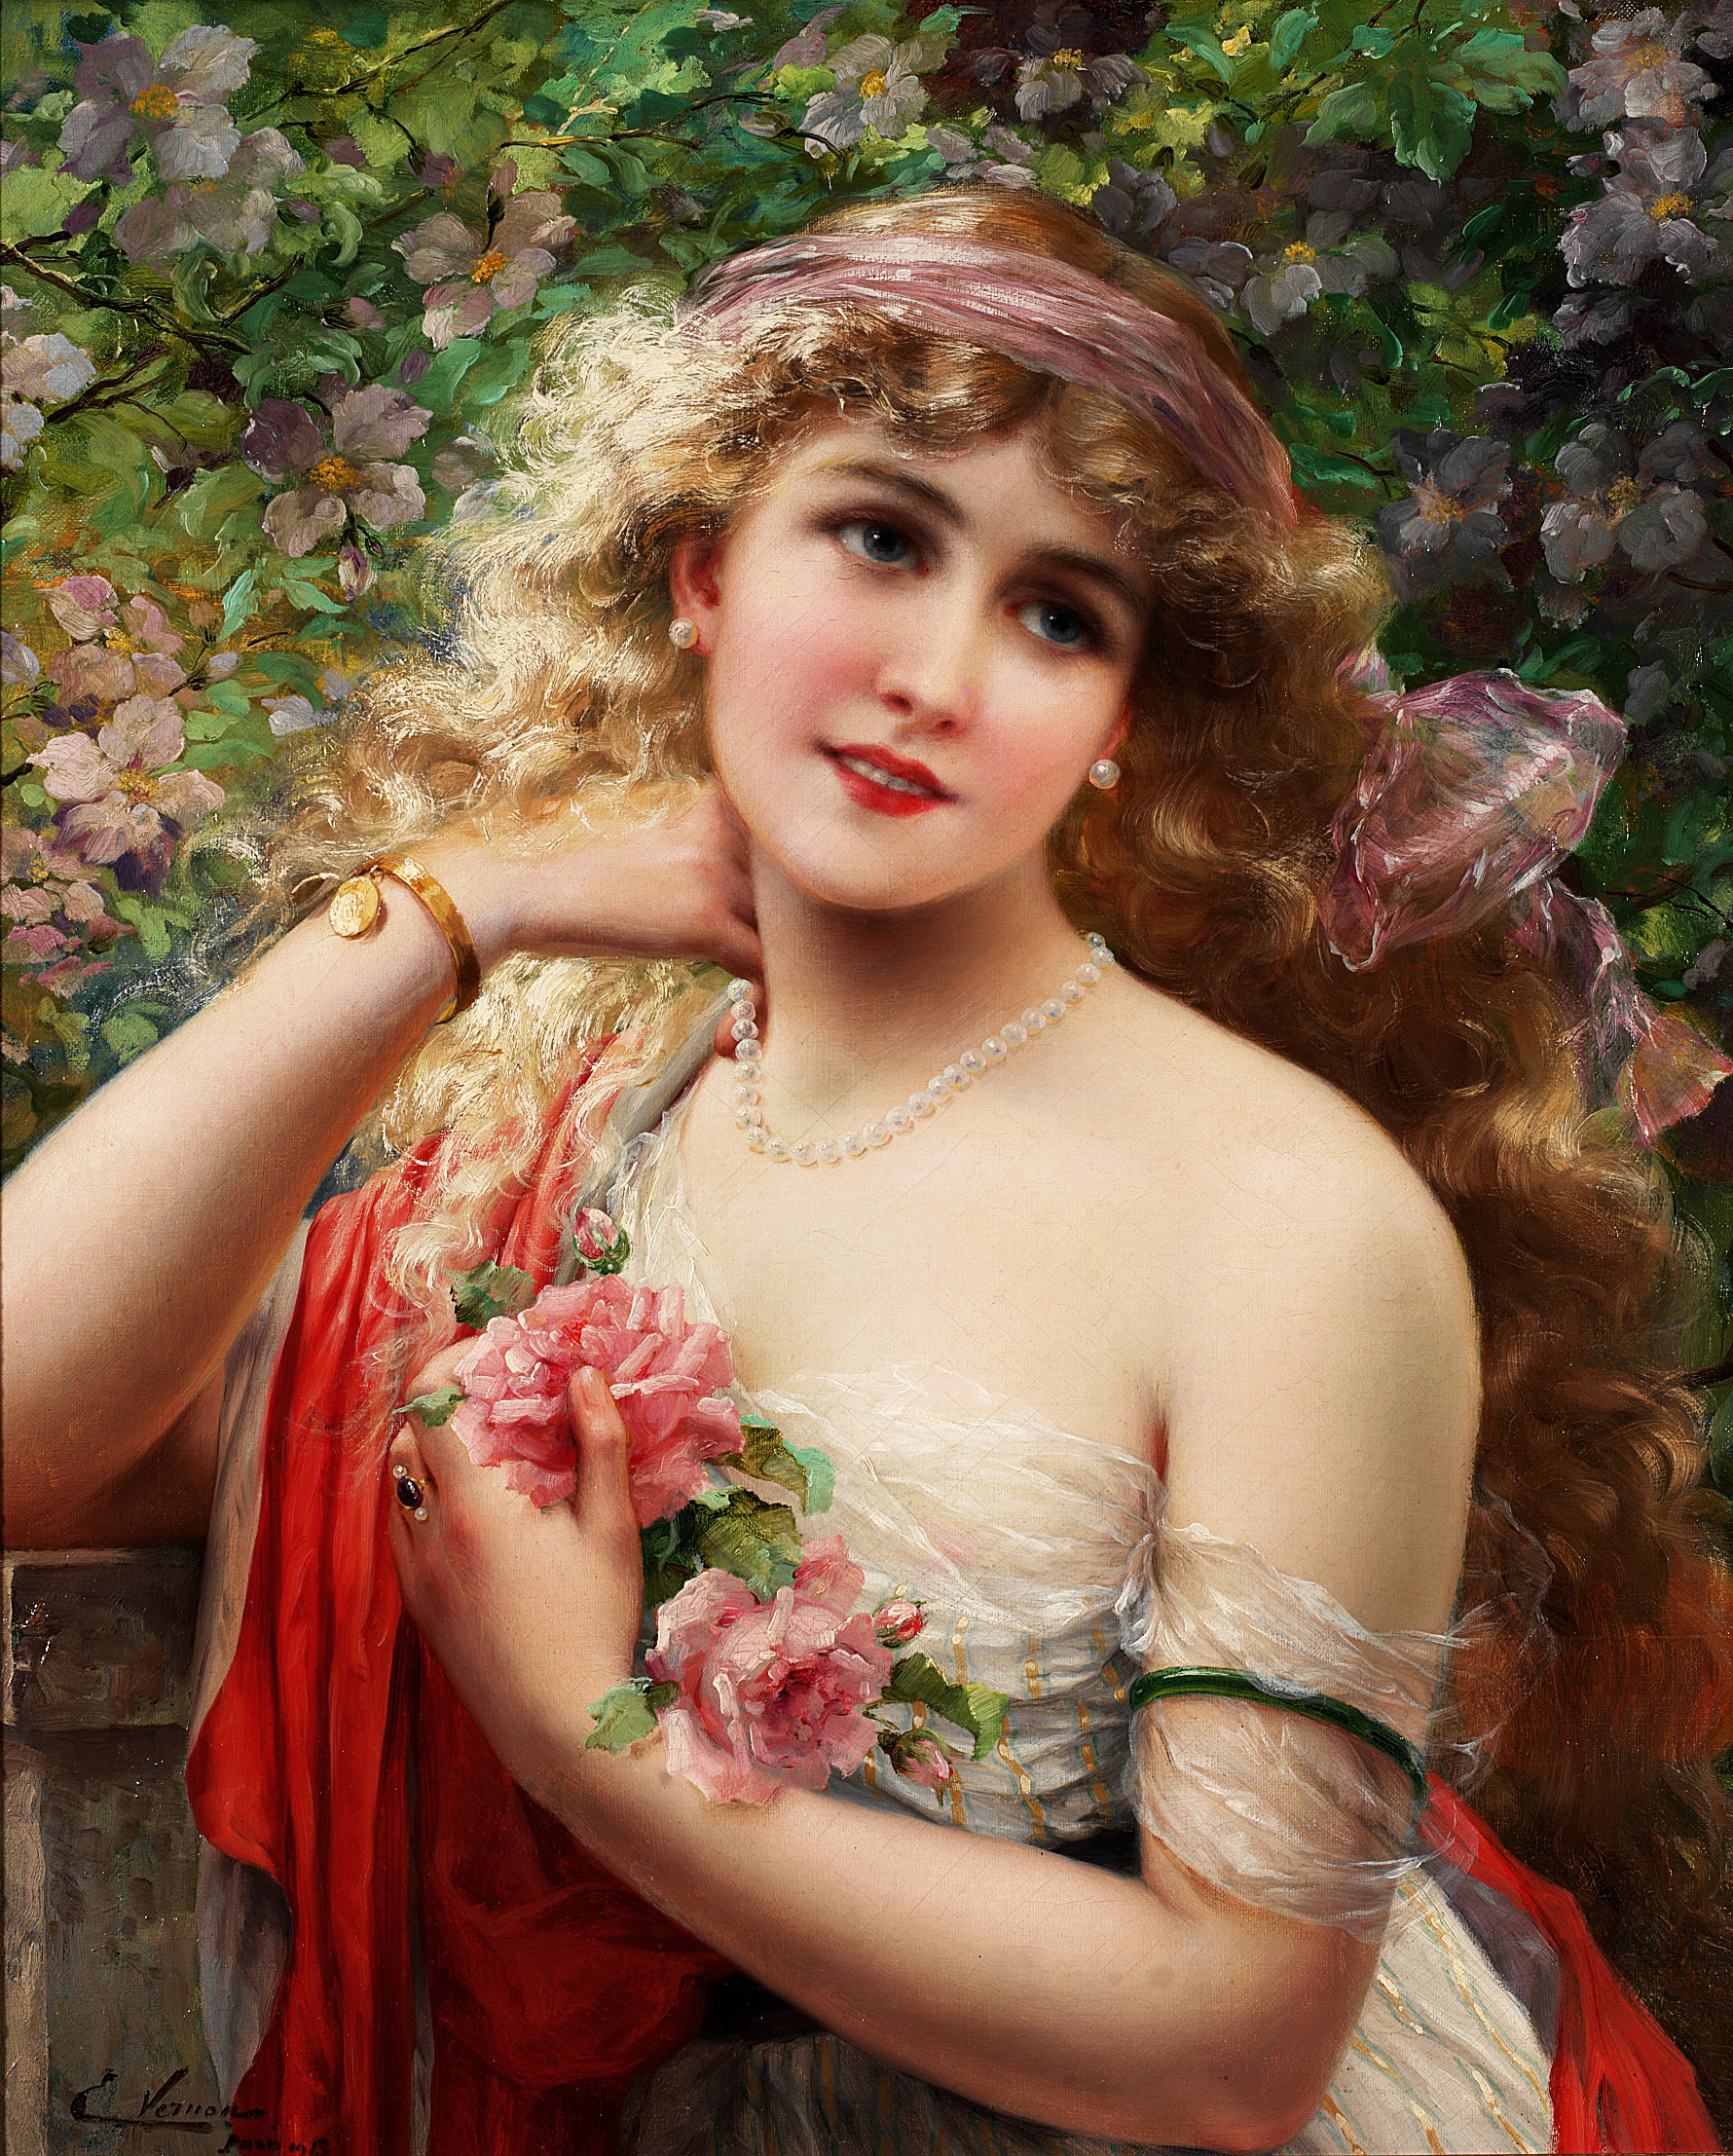 Spring by Emile Vernon, 1913